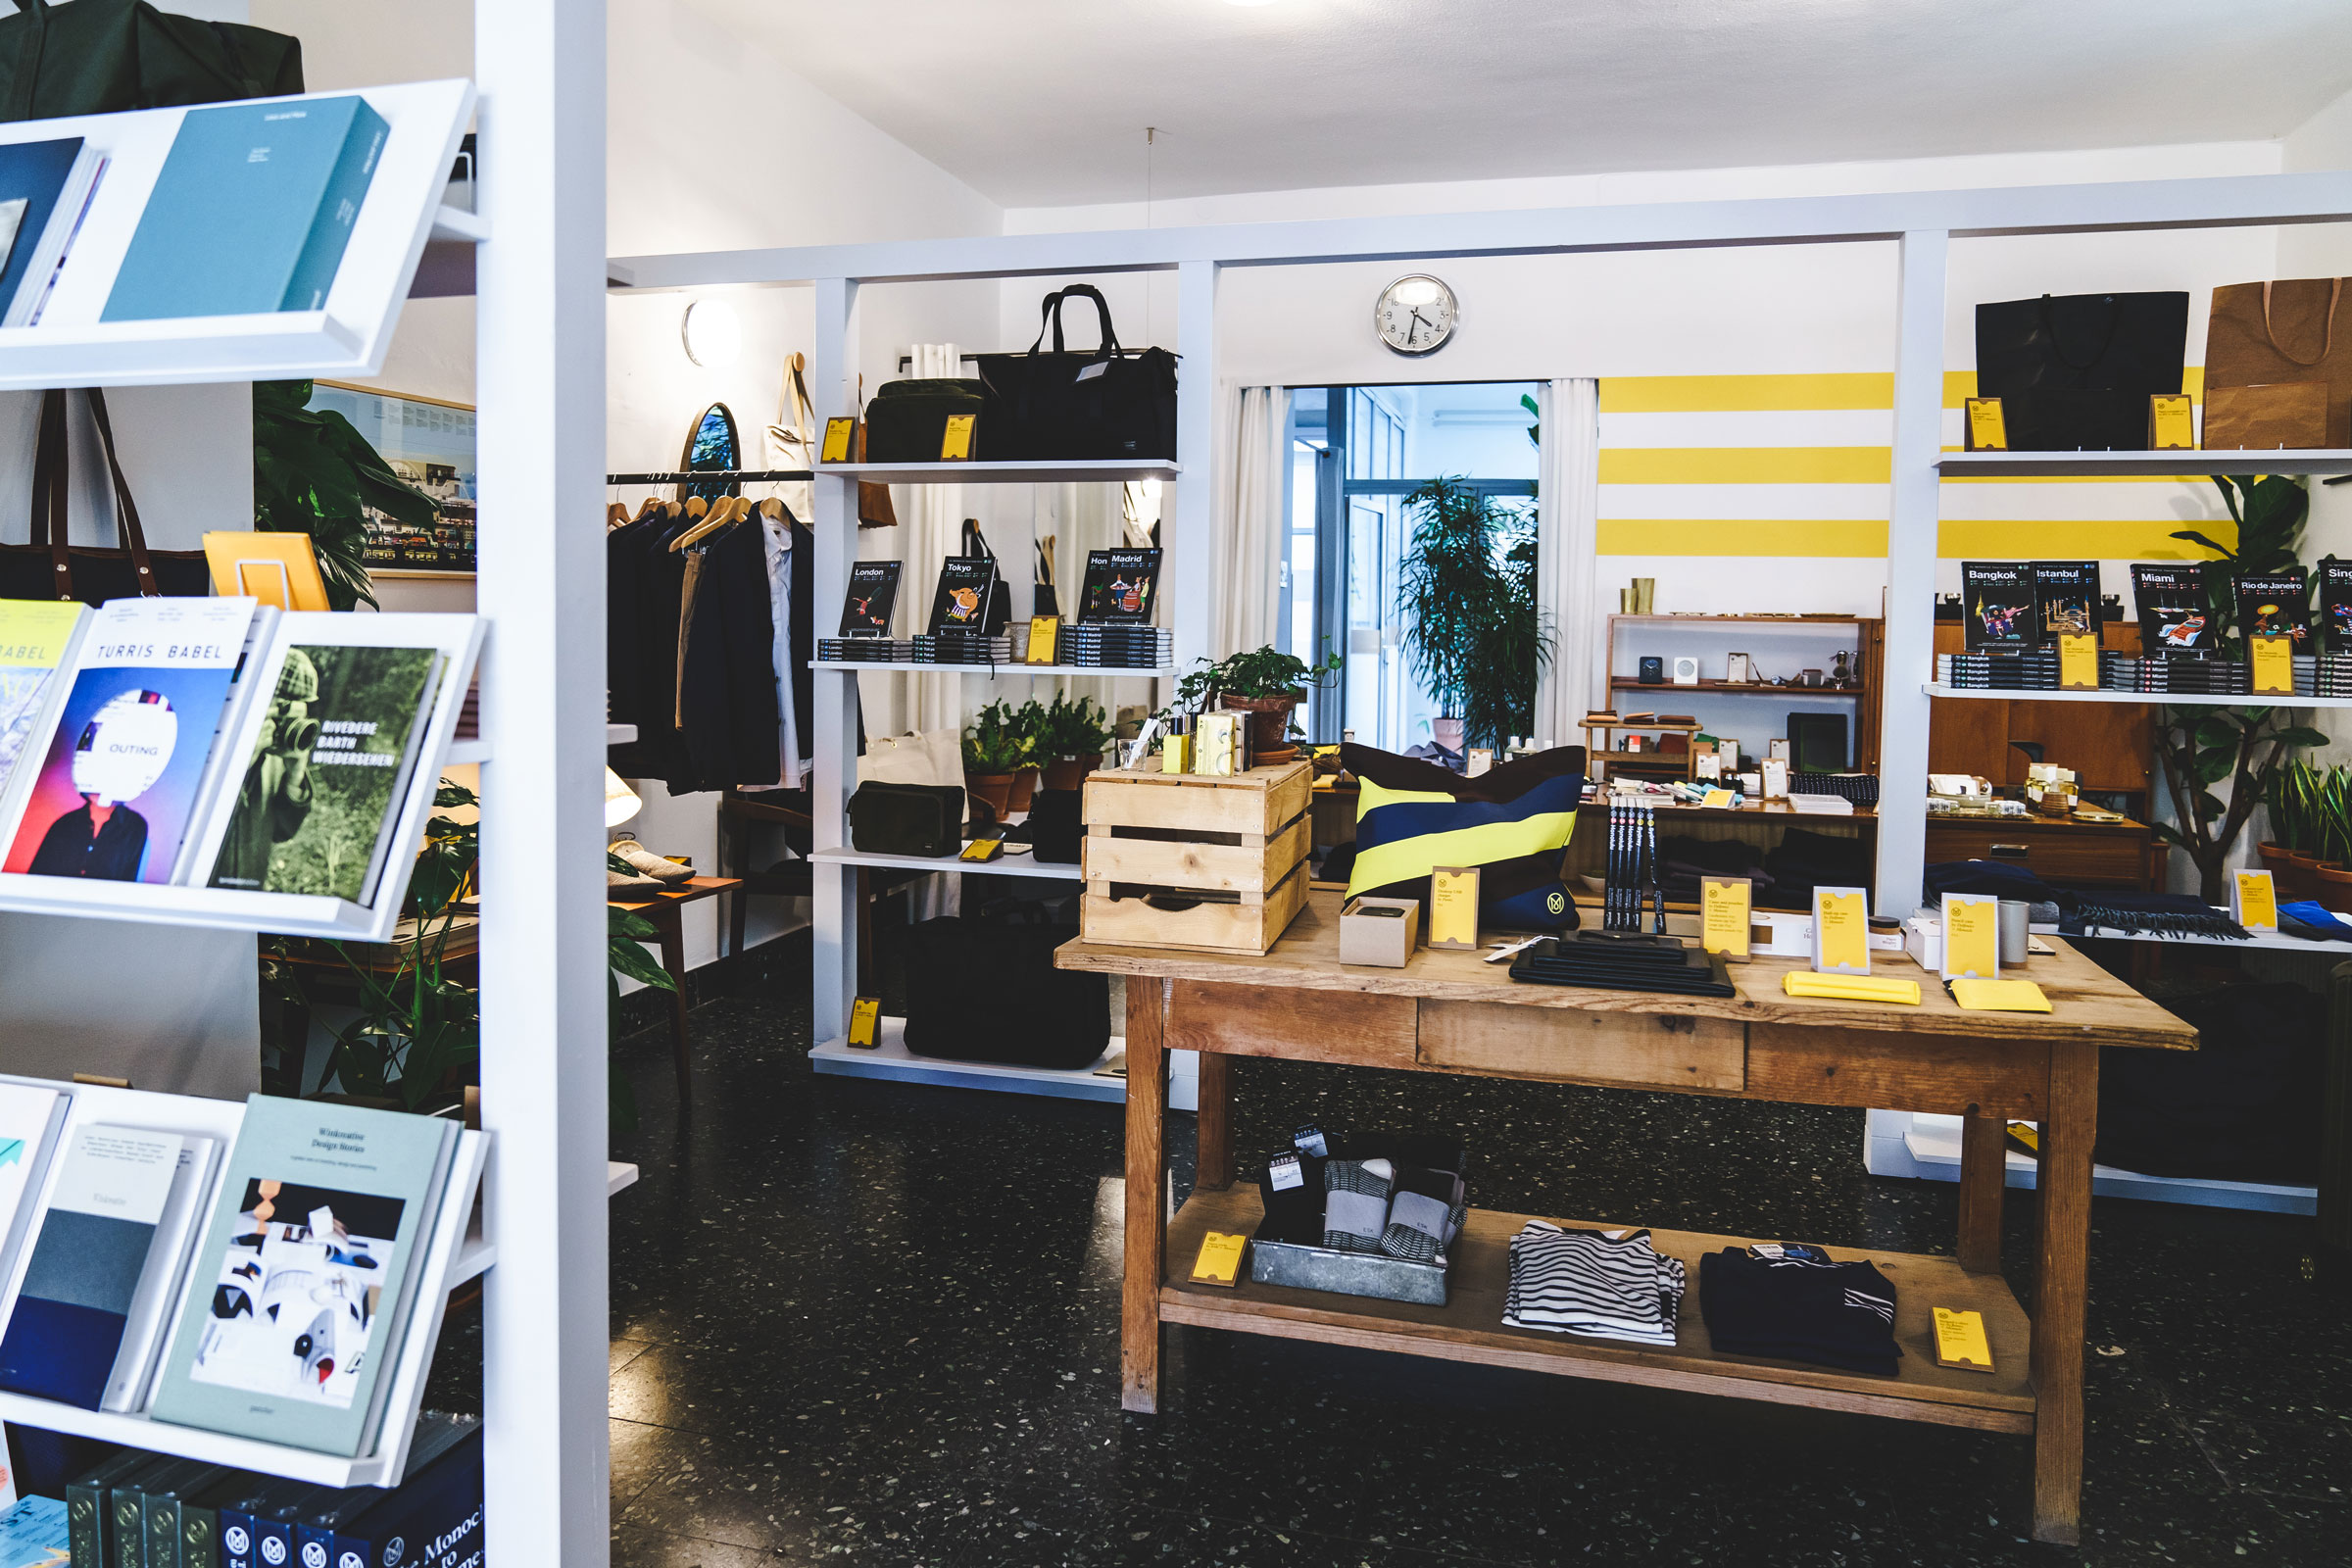 ELLIJOT Blog – Cityguide – Monocle Pop Up Shop in Meran